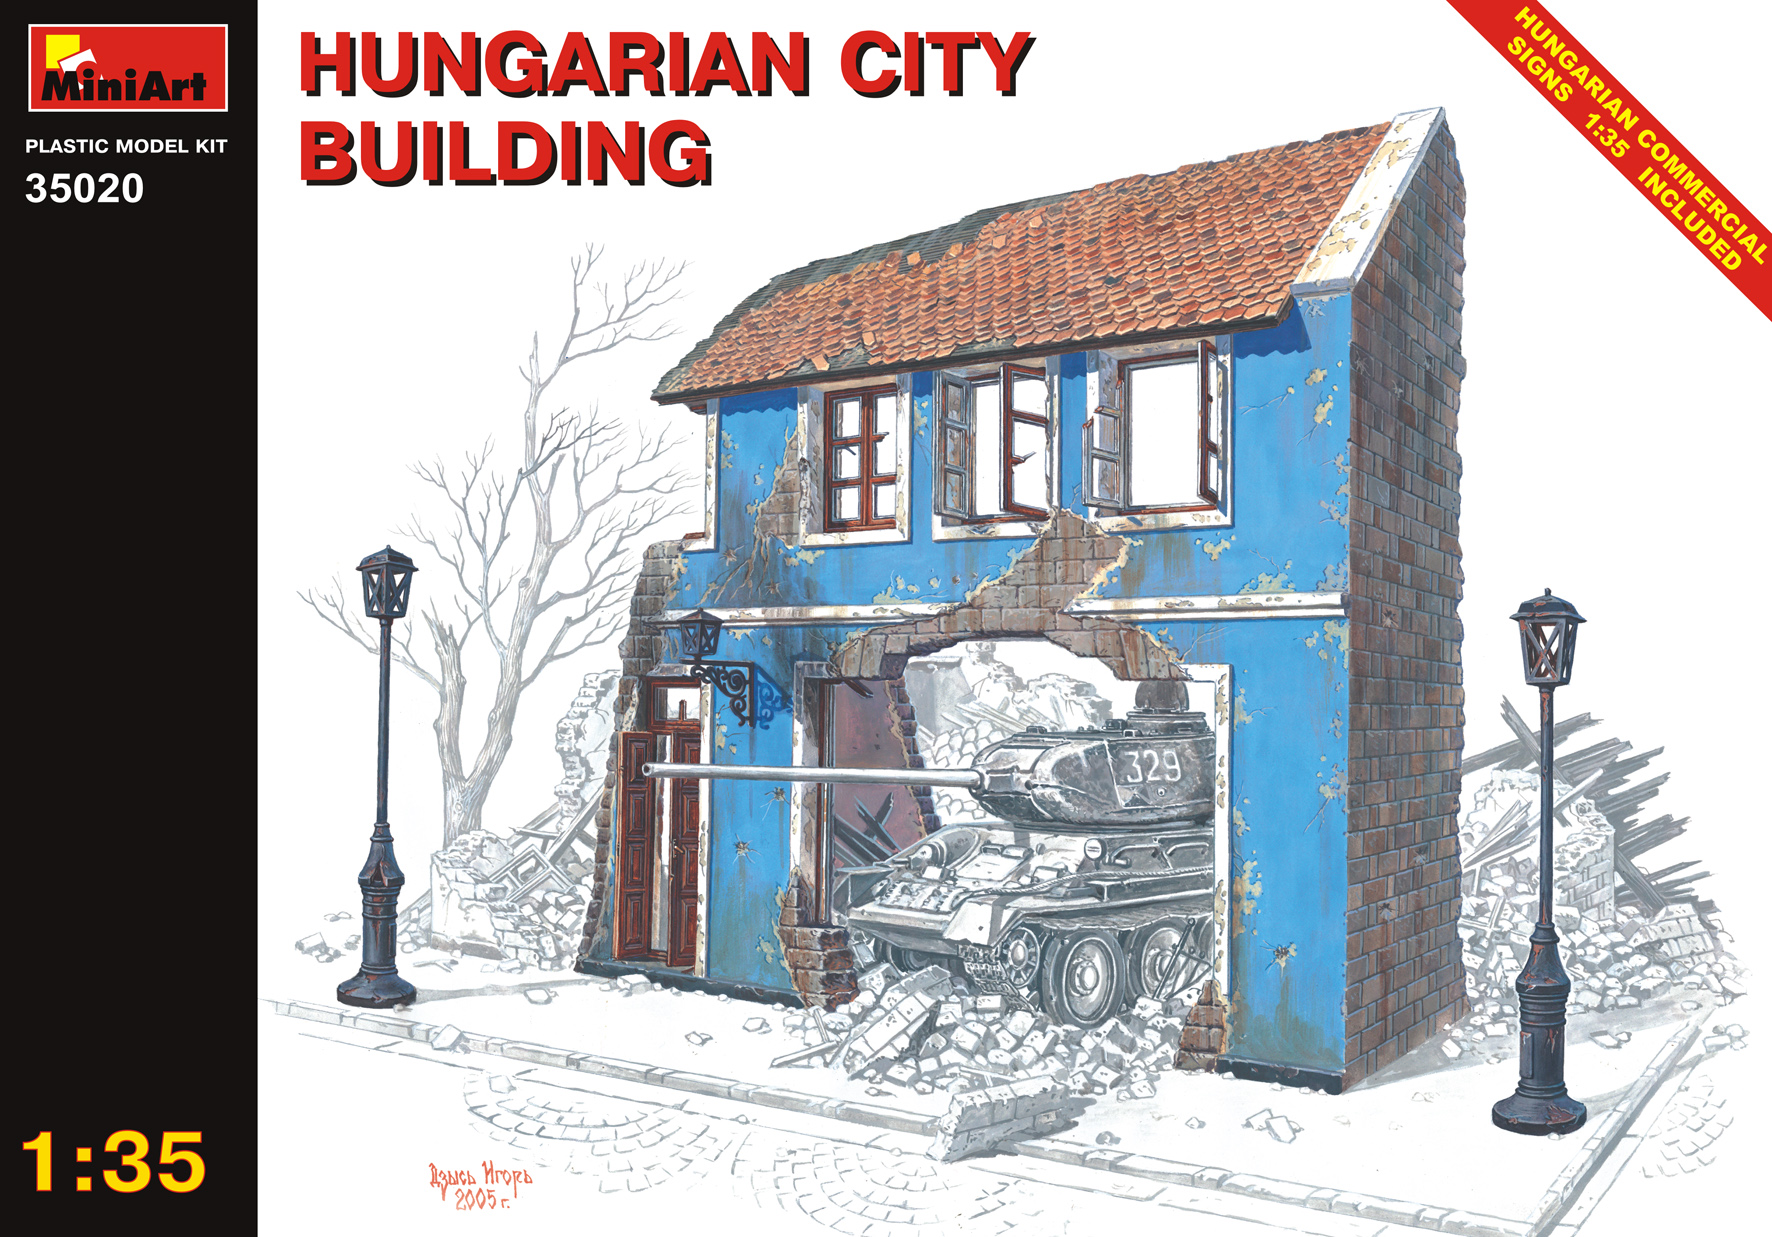 35020 HUNGARIAN CITY BUILDING